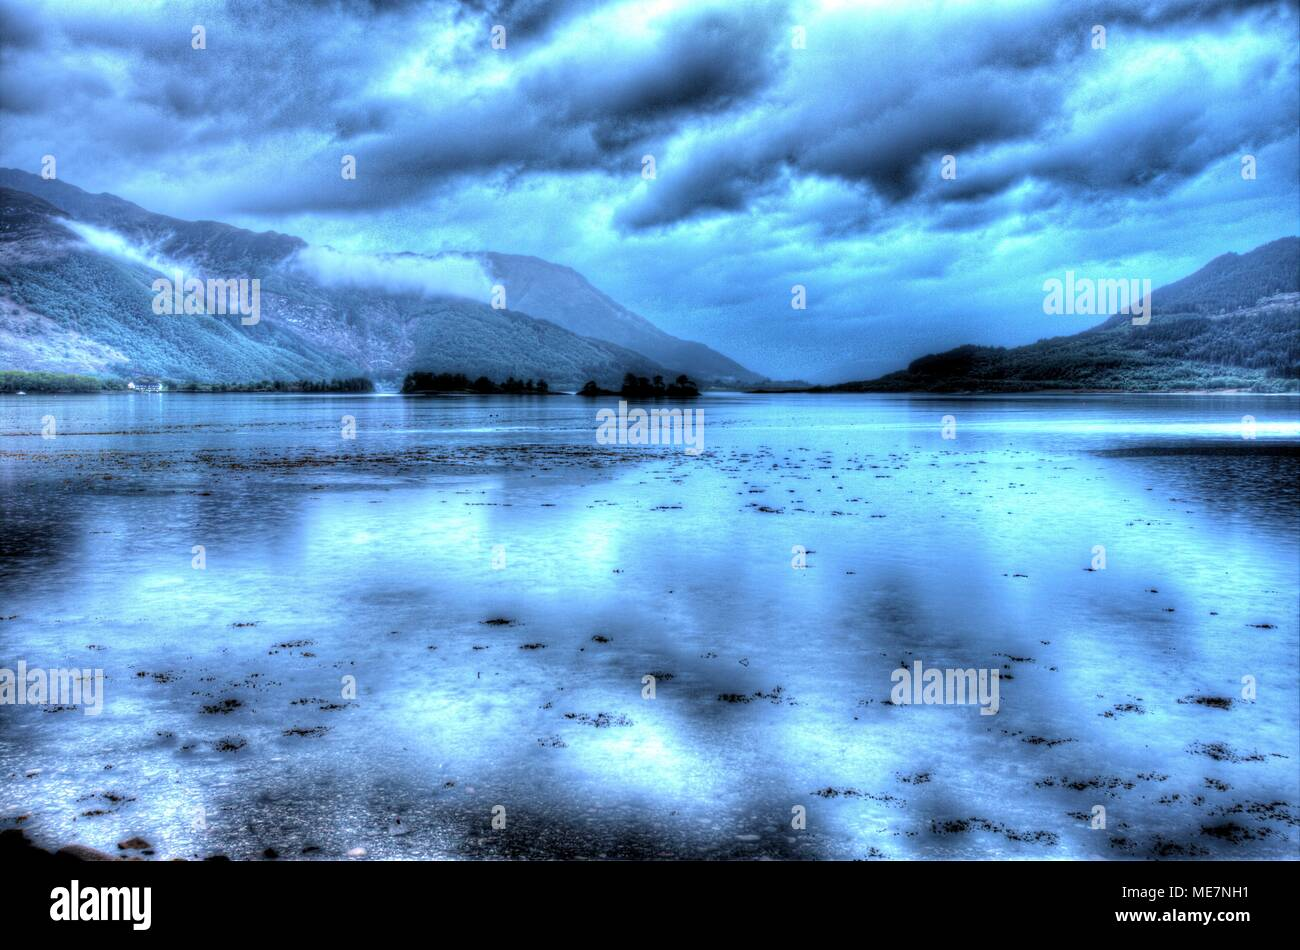 Area of Gen Coe, Scotland. Artistic dusk view of Loch Leven, with North and South Ballachulish in the distant background. - Stock Image